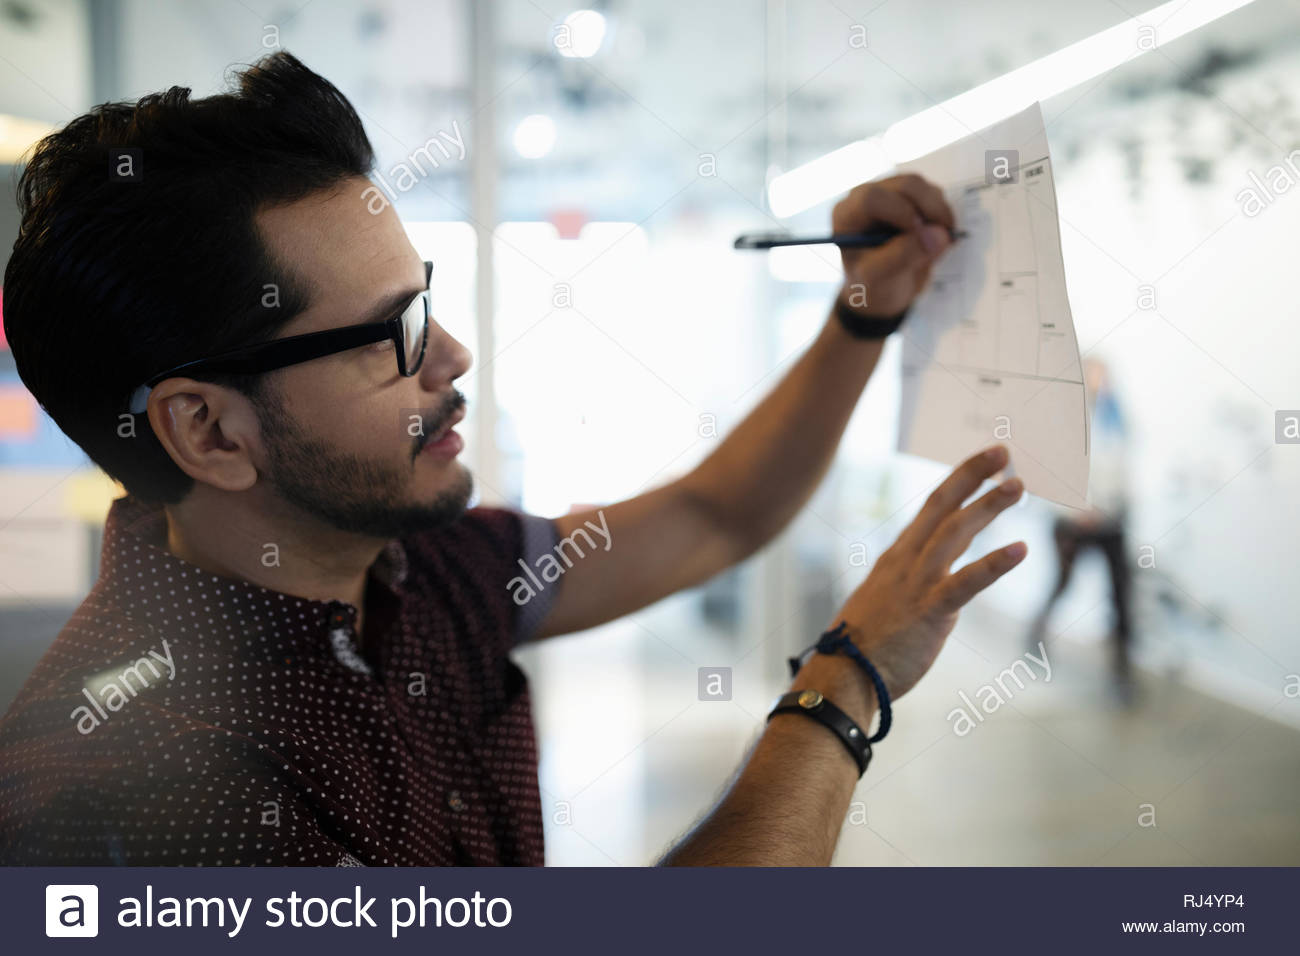 businessman scheduling, planning in office - Stock Image